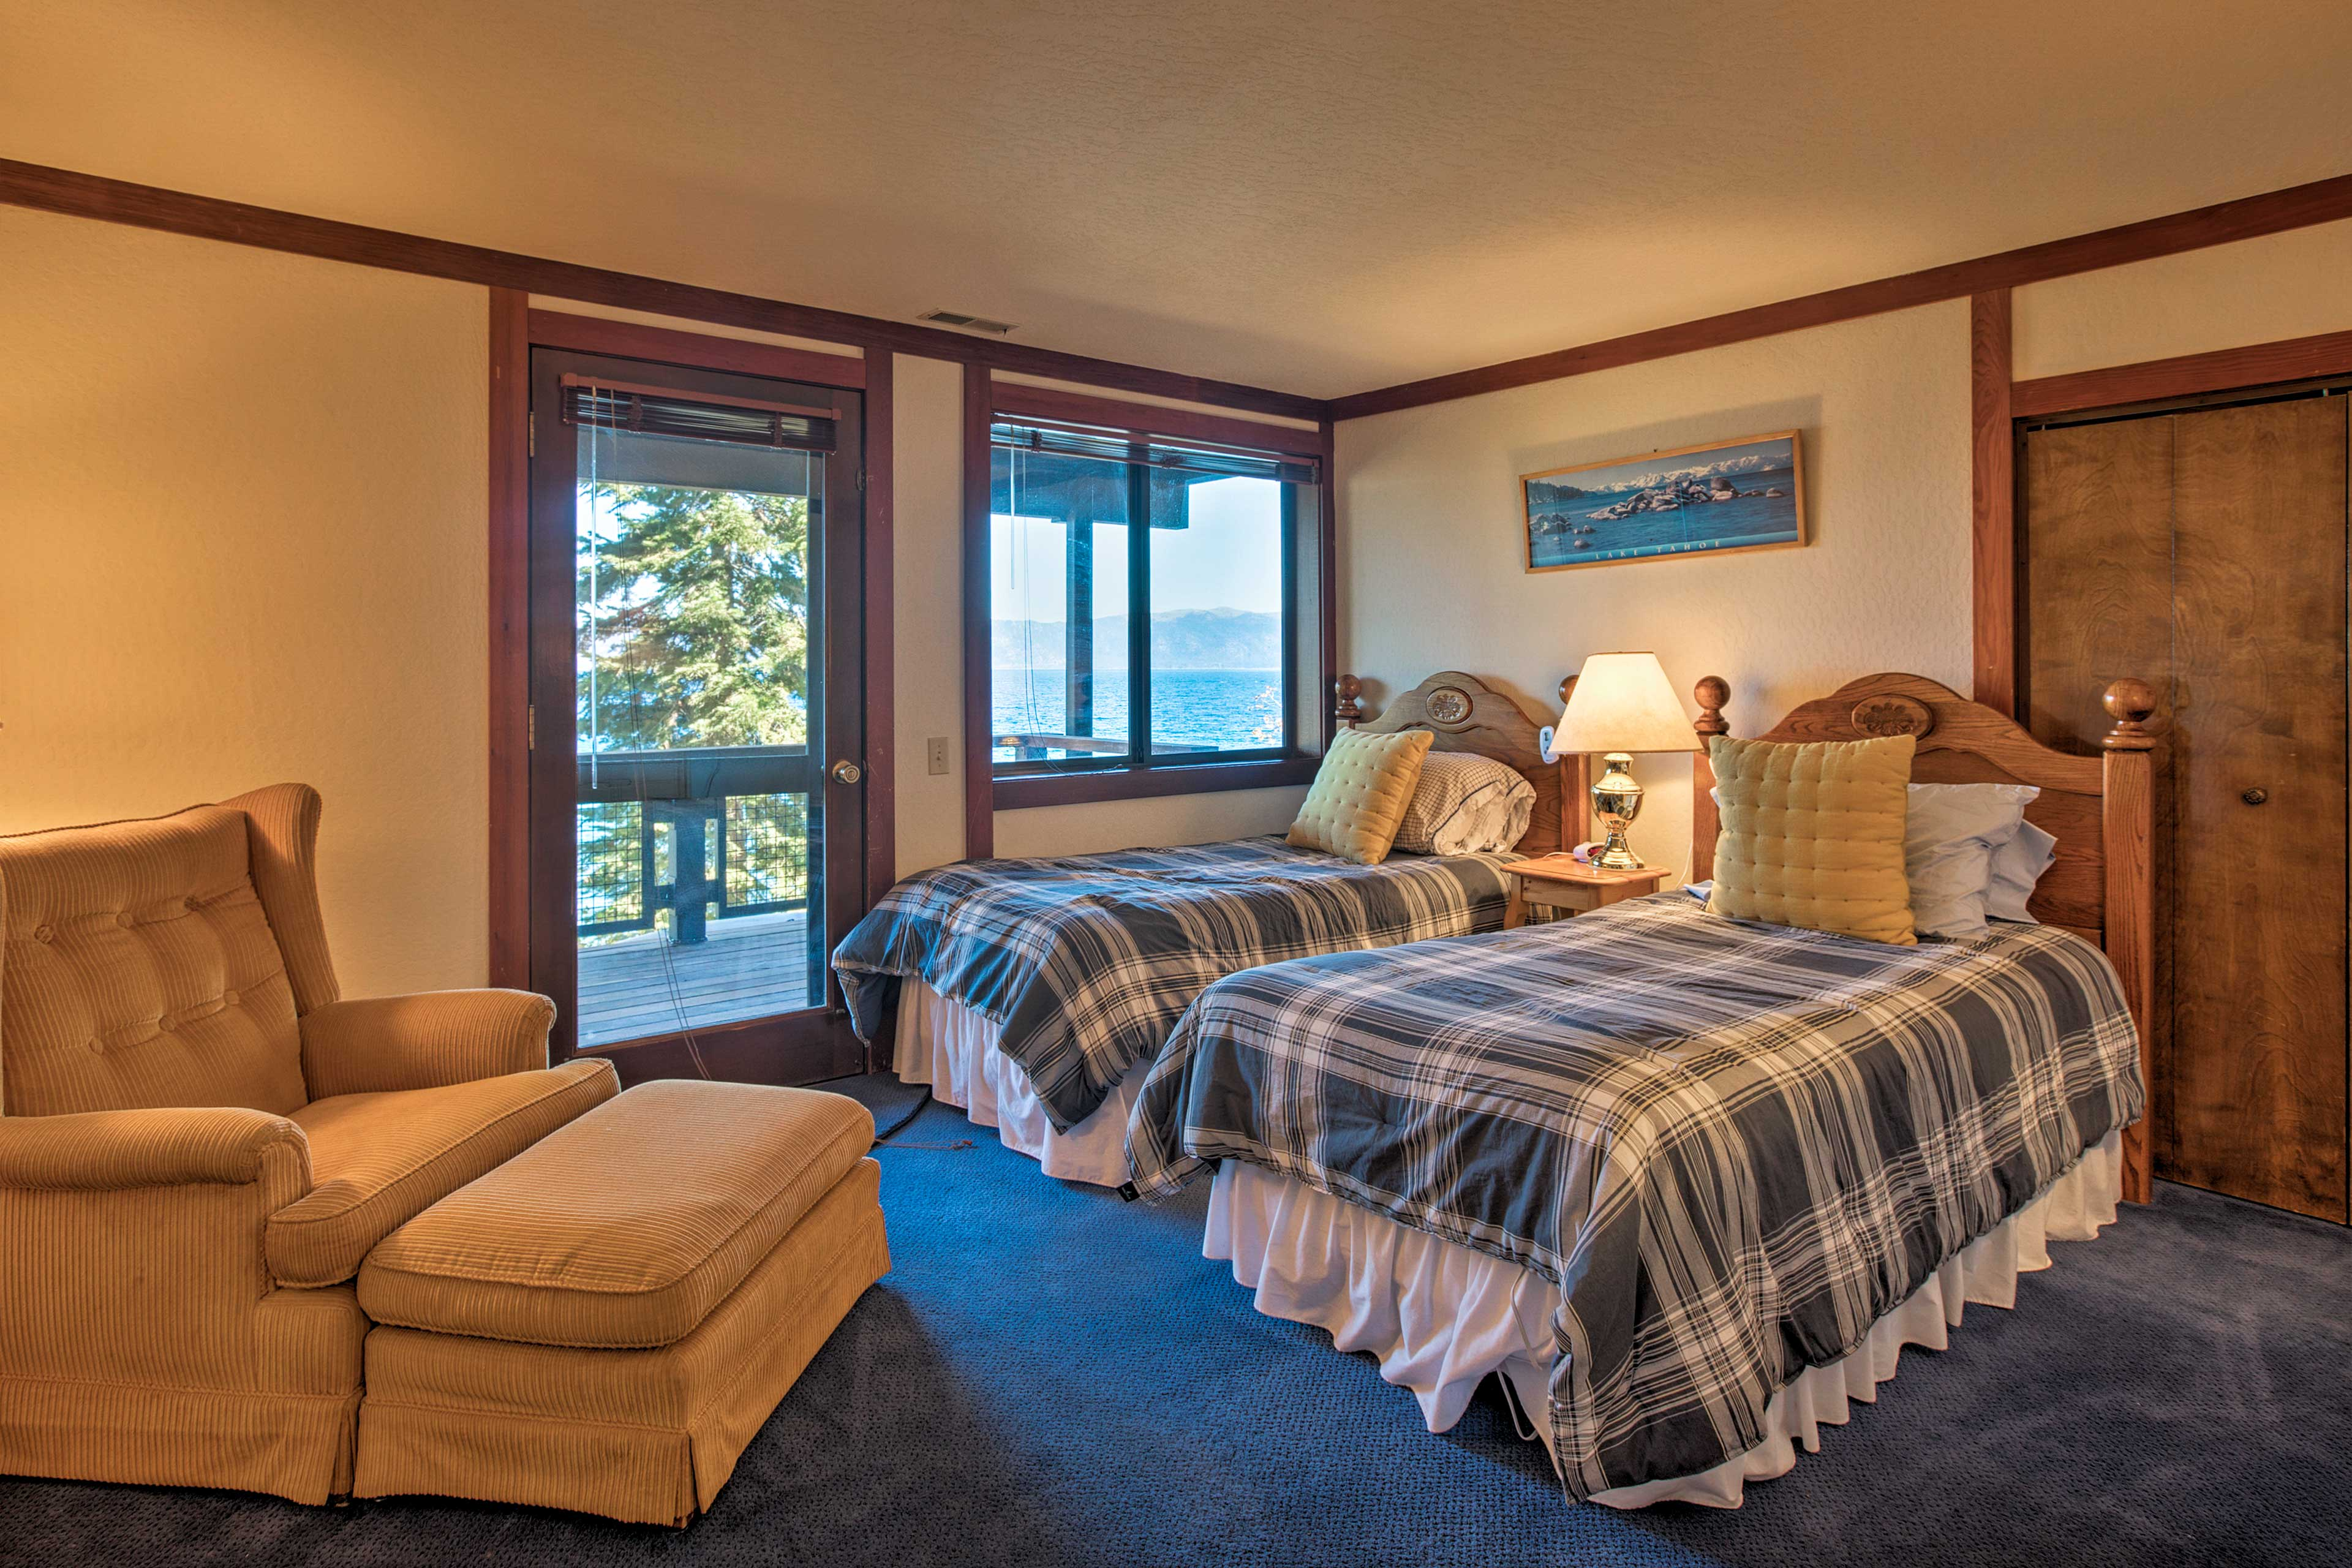 This second master suite features 2 twin beds and a private deck.